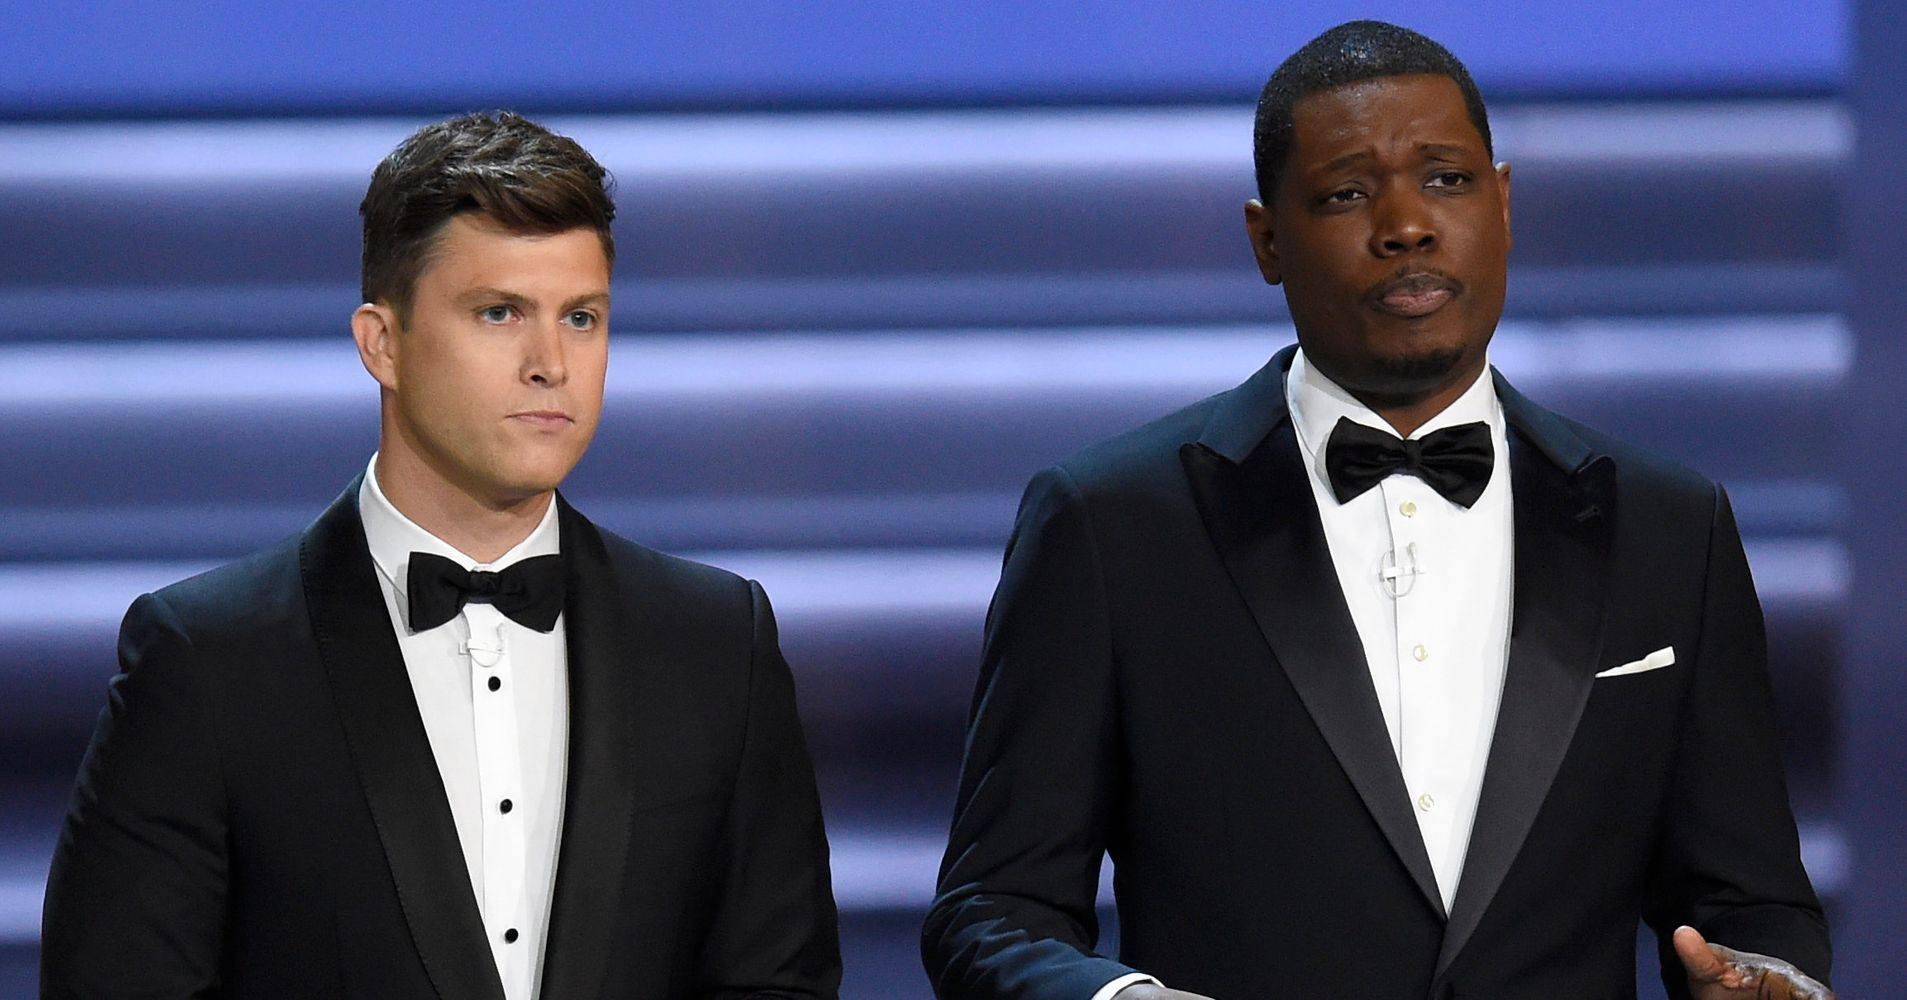 Westlake Legal Group 5cbce8262300007d006db741 Michael Che Berates Culture Writer For Mocking 'SNL' Co-Star Colin Jost